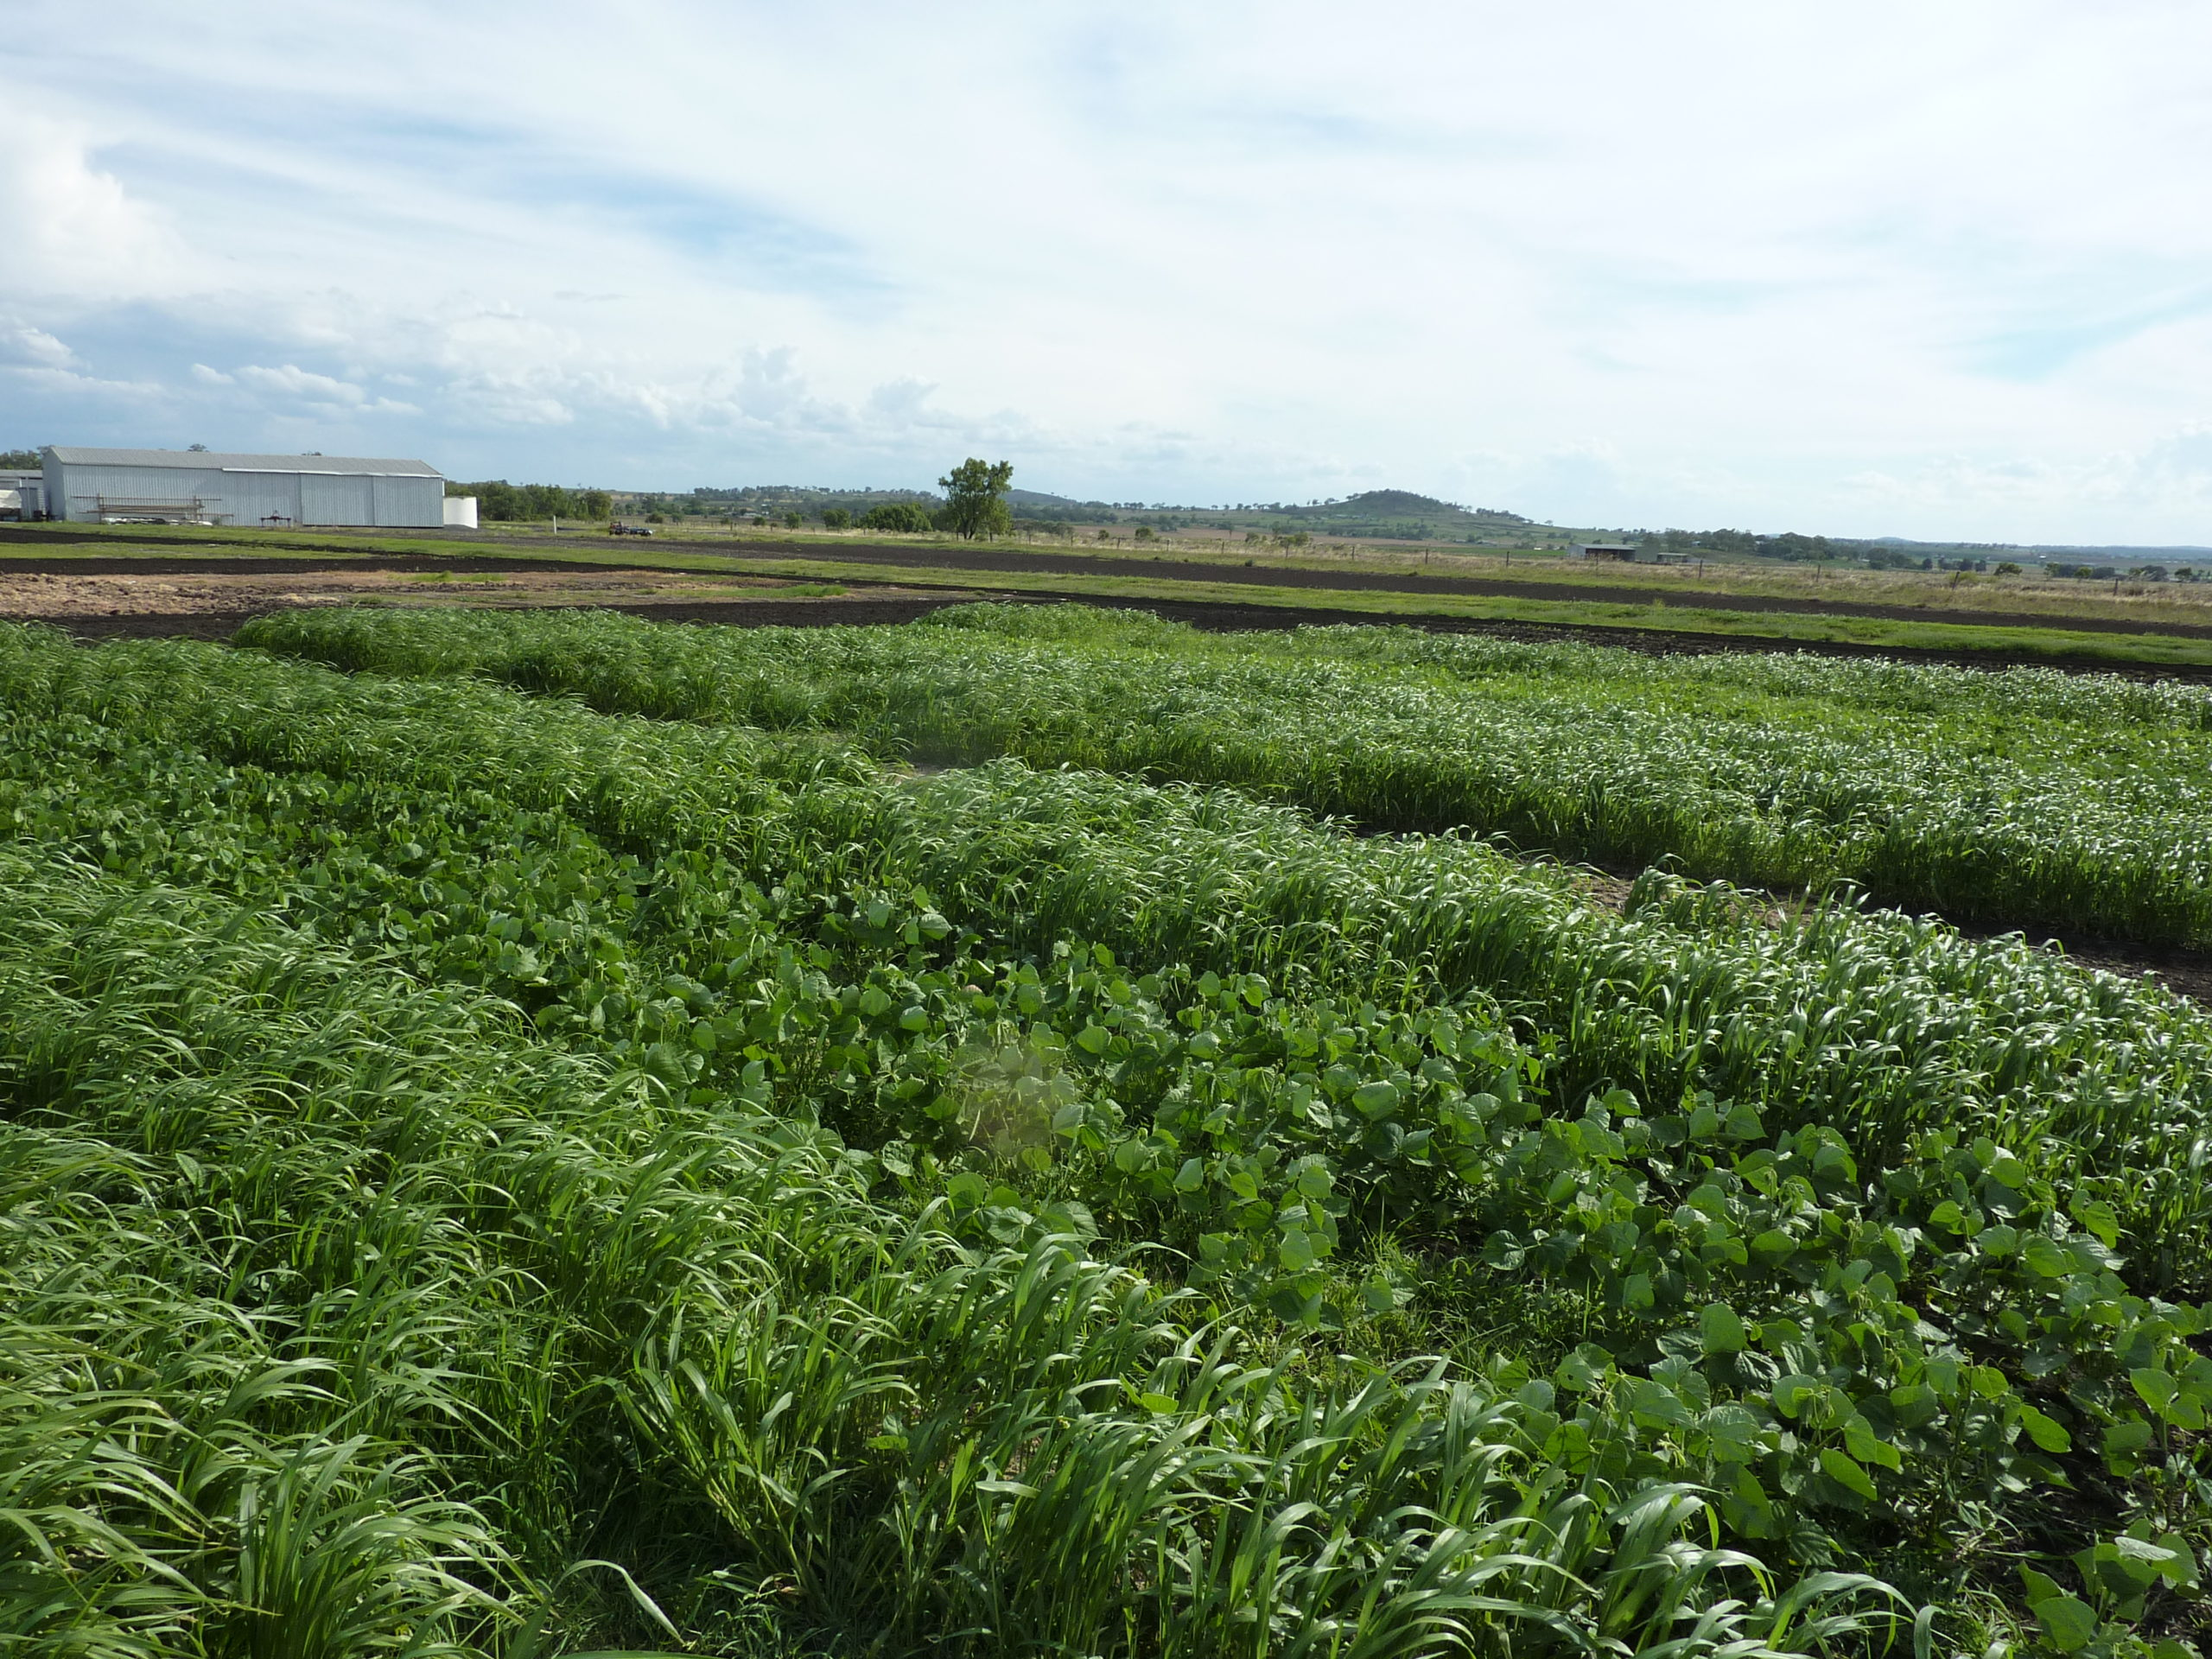 Cover crops may provide a useful, non-chemical alternative for weed management in northern region fallows.